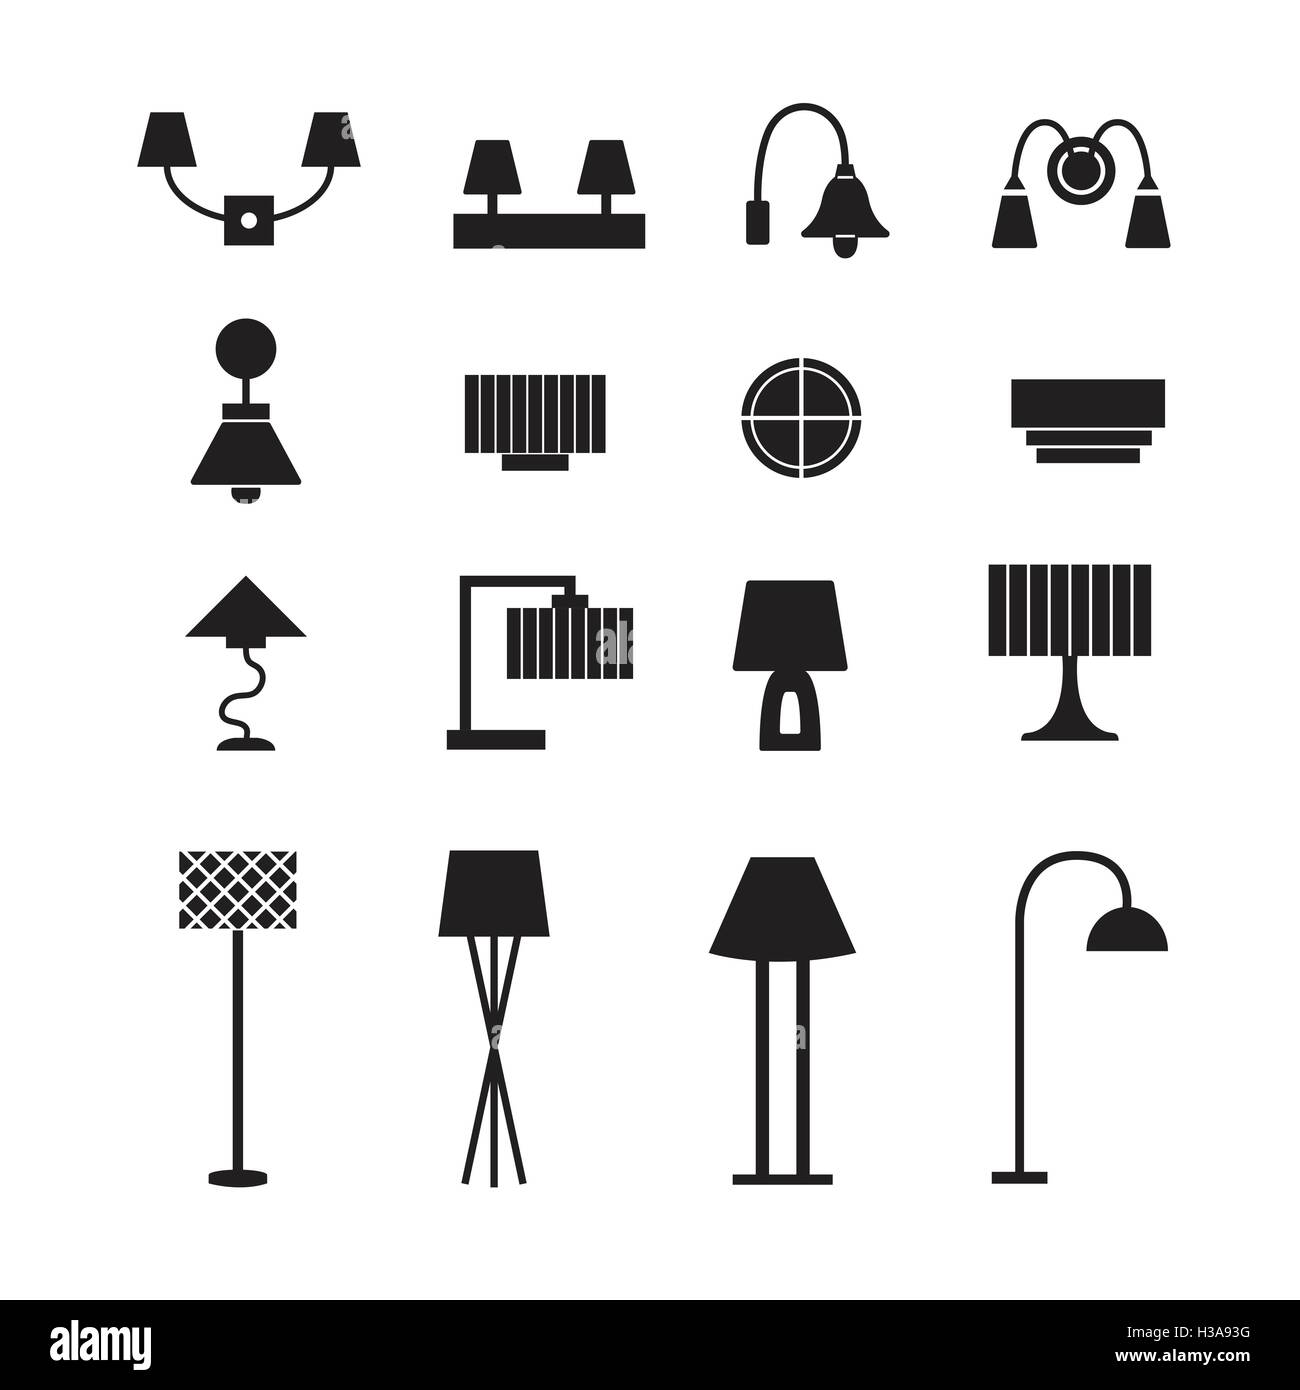 Hanging Lamp Logo Lamp Vector Wall Lamp Desk Lamp Floor Lamp Decorate